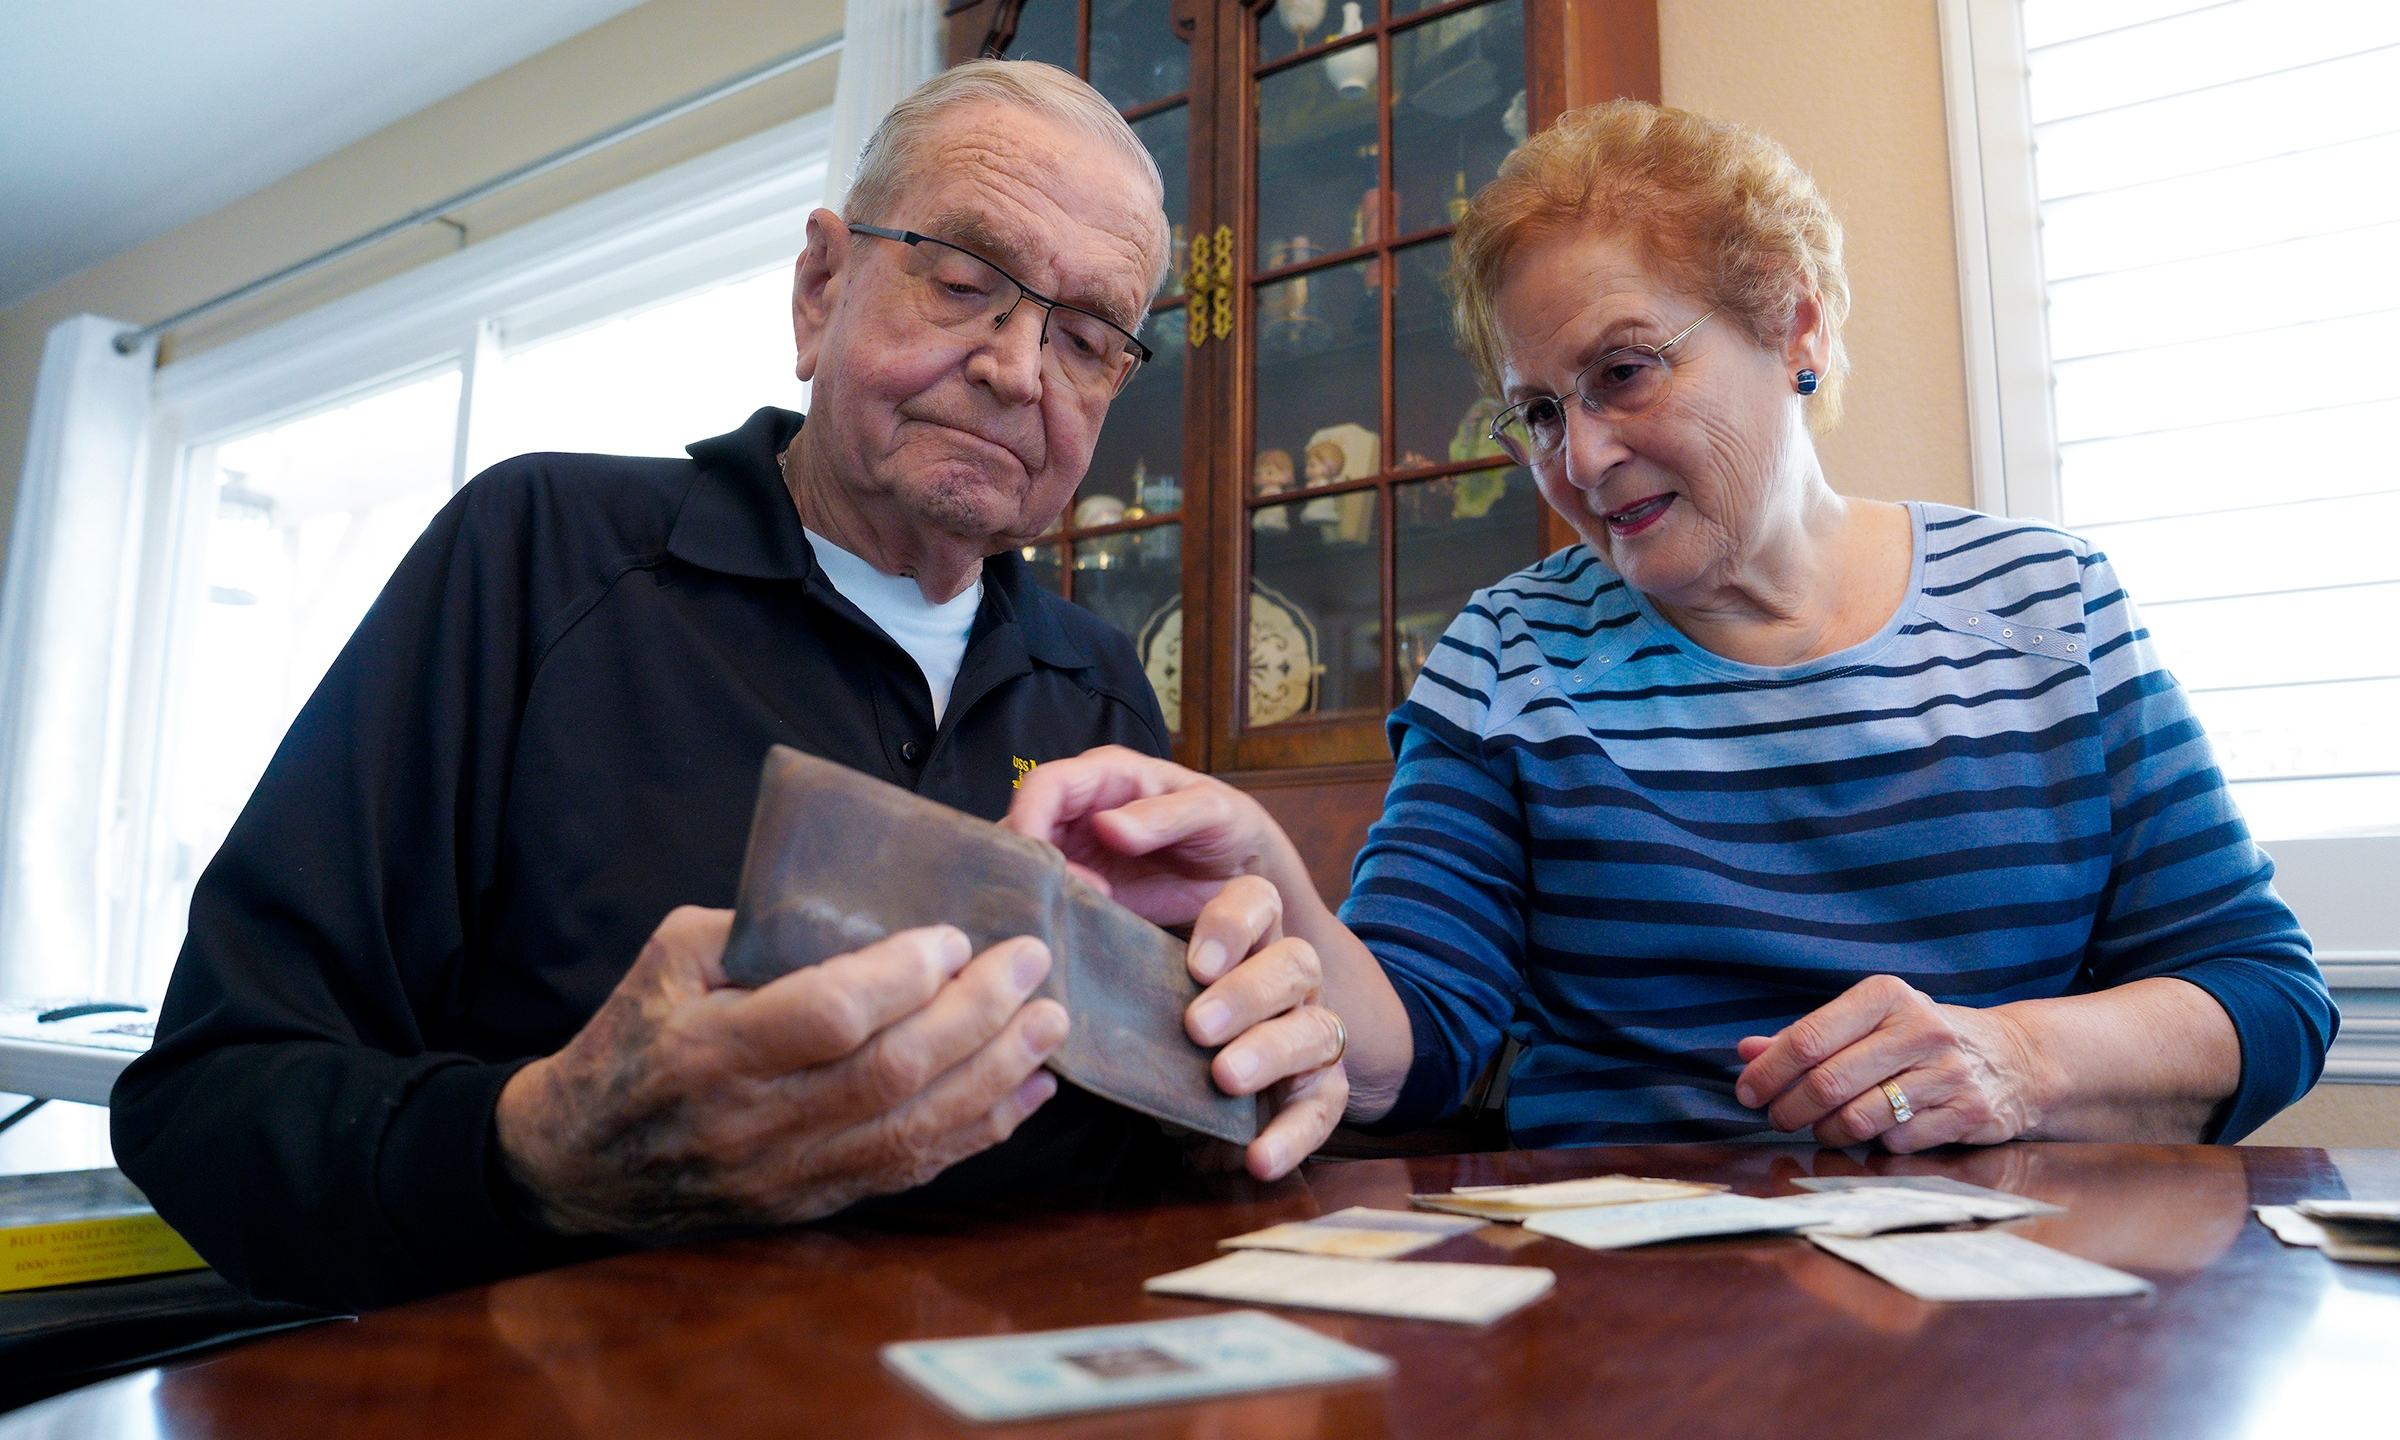 Paul Grisham and his wife Carole Salazar look over his wallet and the items that were inside when he lost the wallet back in 1968 at their home in the San Carlos section of San Diego, Calif., Wednesday, Feb. 3, 2021. Grisham's wallet was missing for so long he forgot all about it. Fifty-three years later, the 91-year-old has the billfold back along with mementos of his 13-month assignment as a Navy meteorologist on Antarctica in the 1960s. (Nelvin C. Cepeda/The San Diego Union-Tribune via AP)